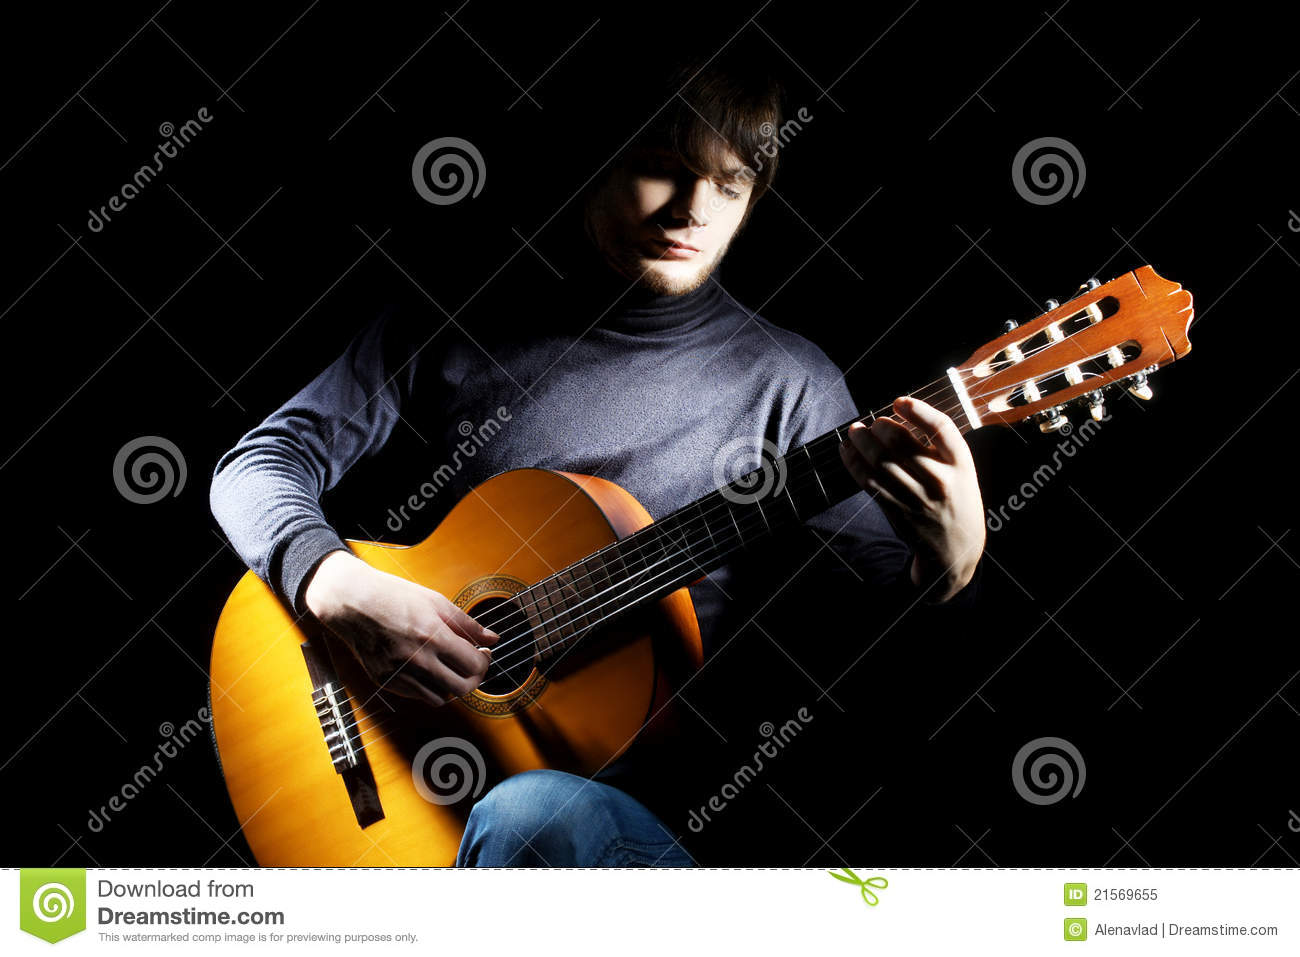 classical guitar player royalty free stock photo image 21569655. Black Bedroom Furniture Sets. Home Design Ideas